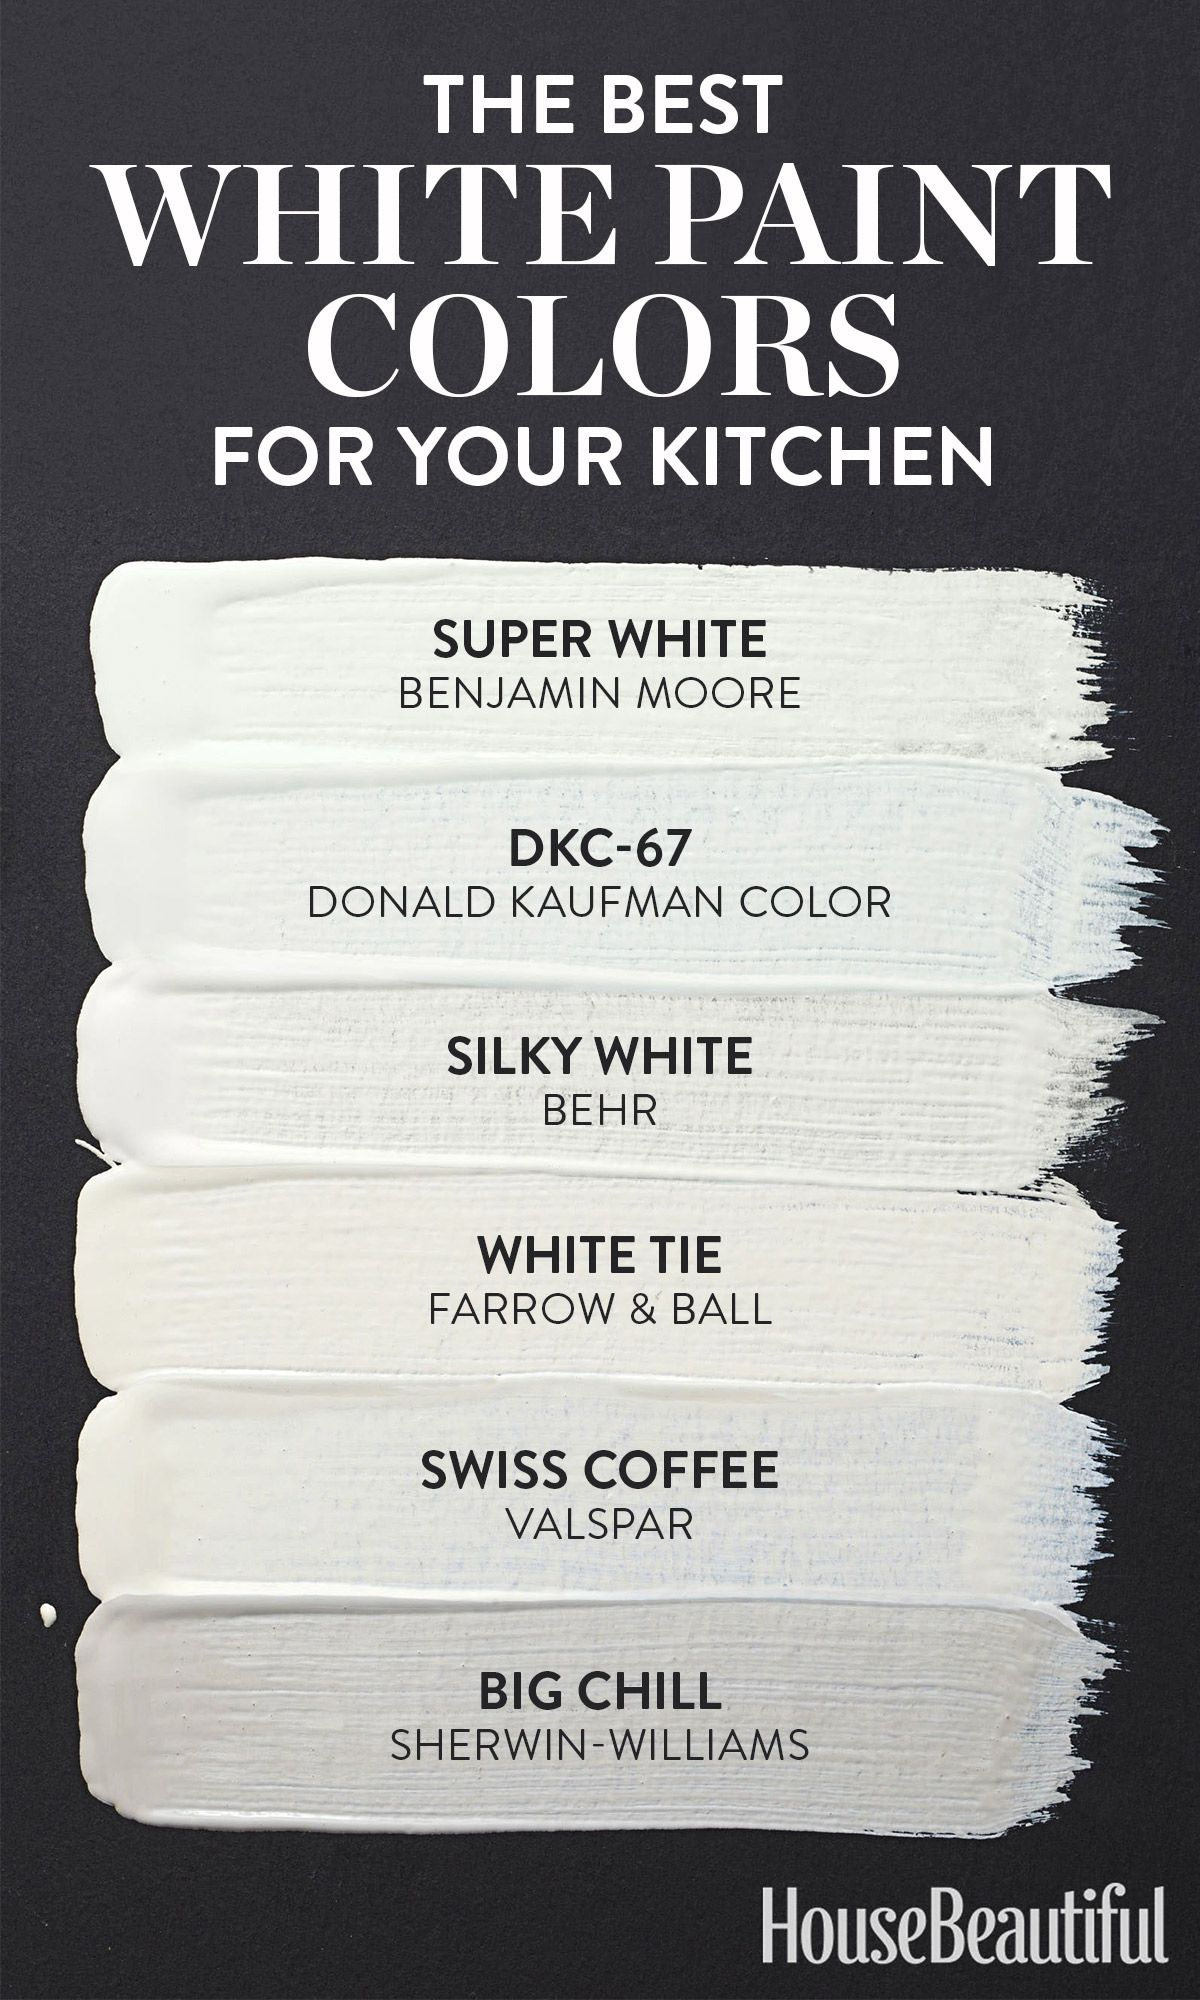 white paint colors: 5 favorites for shiplap | sherwin williams